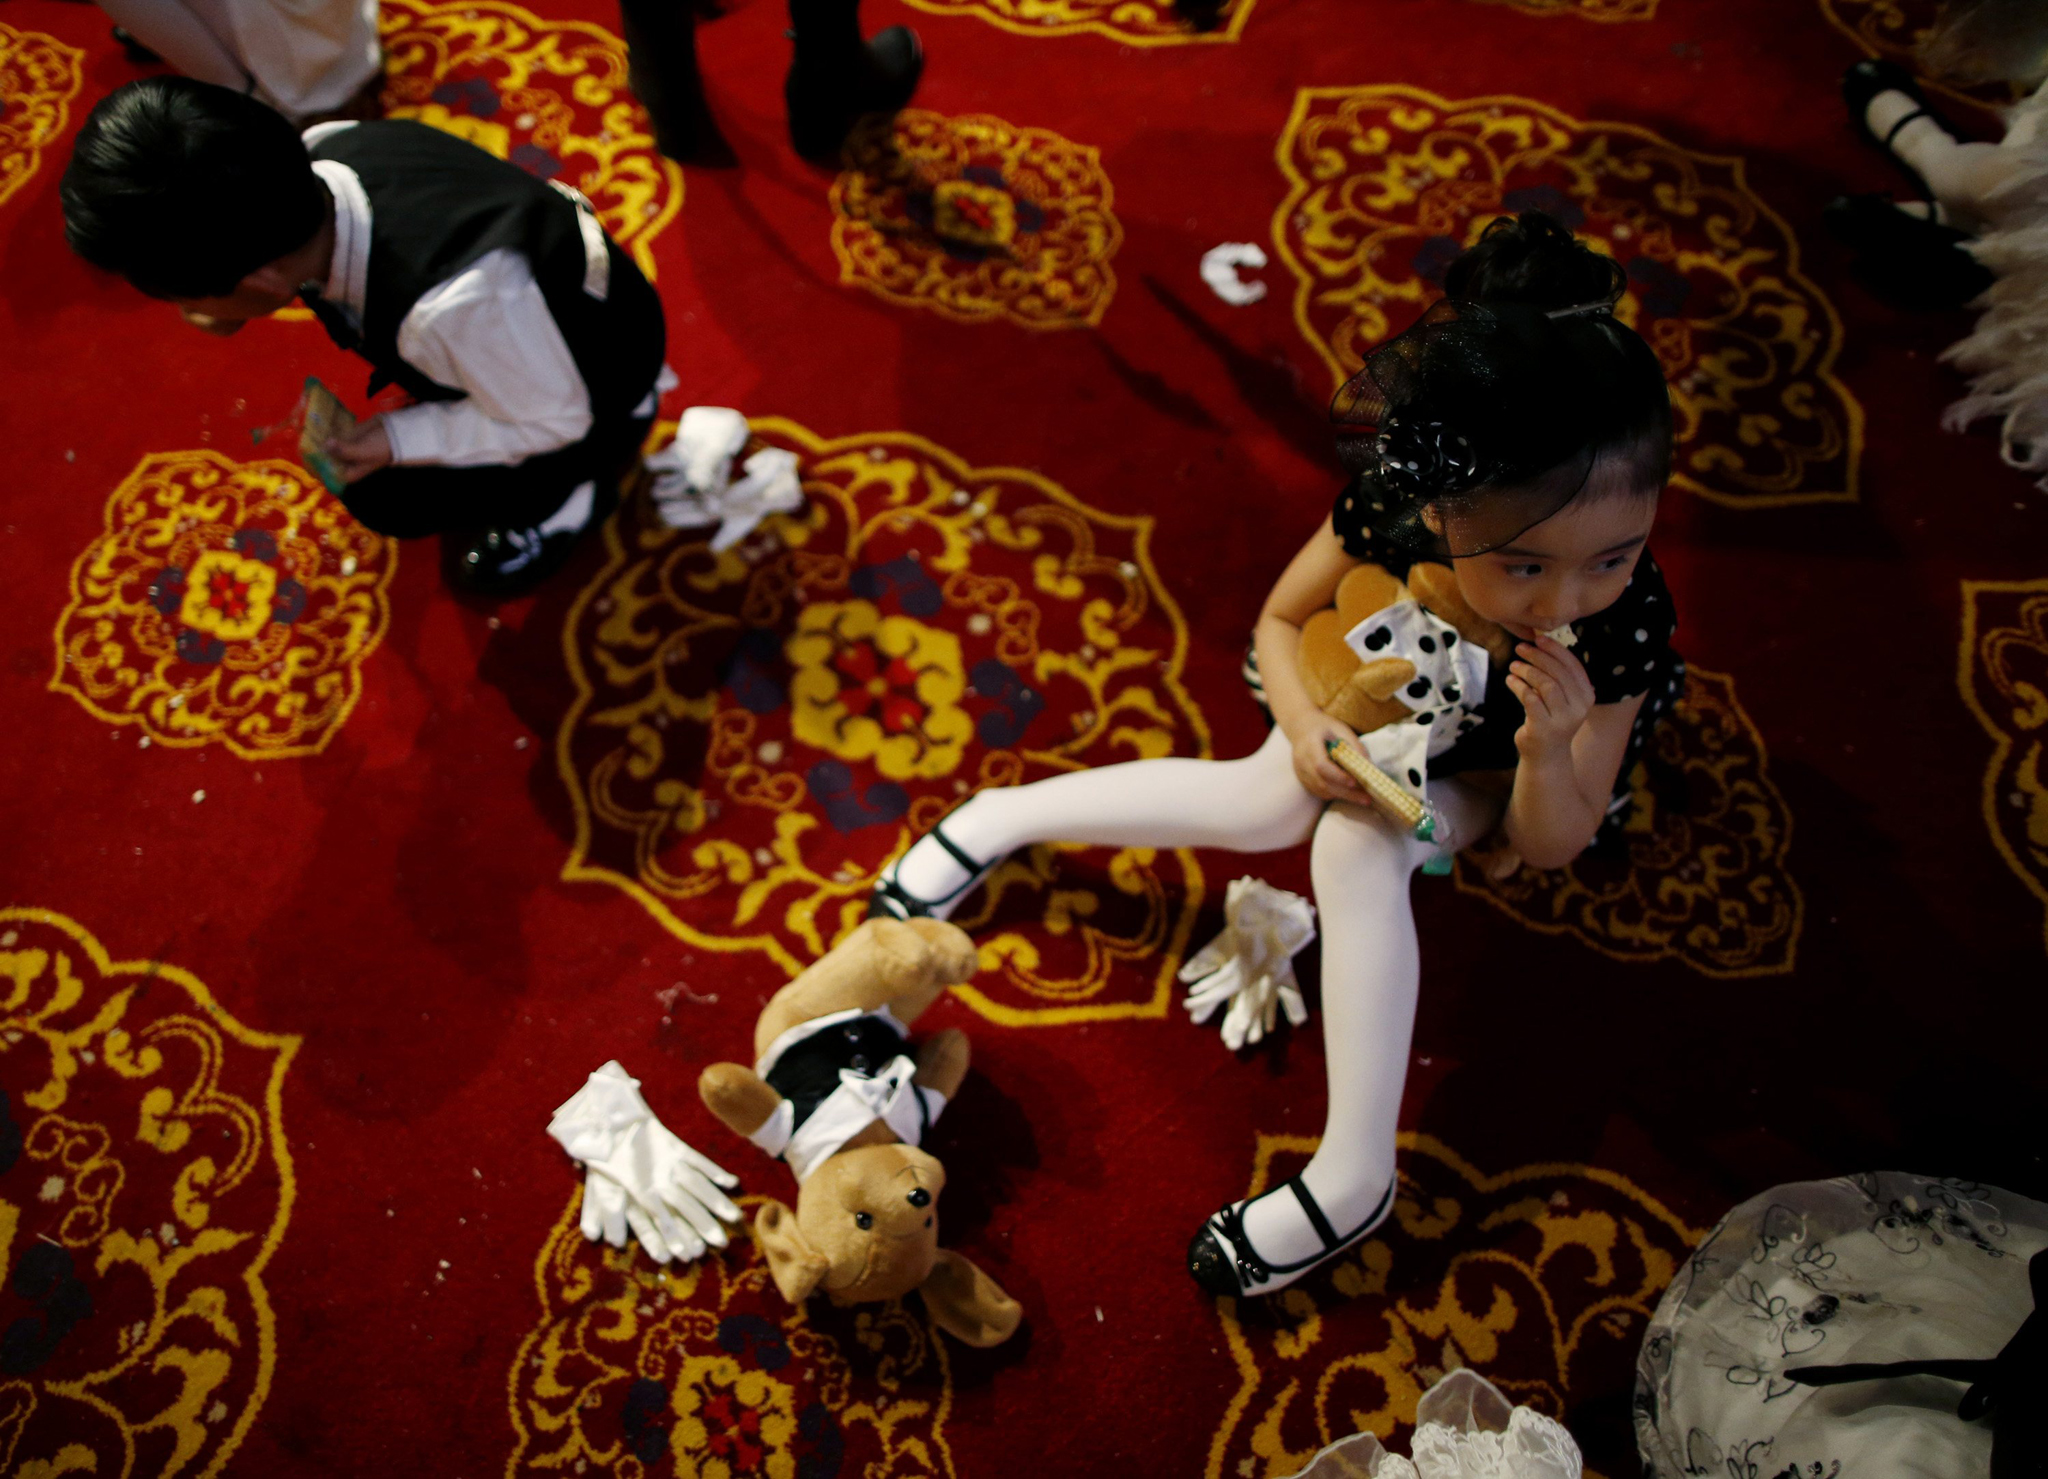 A child model eats a biscuit on the floor of the backstage during a rehearsal for the Dong Wenmei T100 Children's Collection during China Fashion Week in Beijing